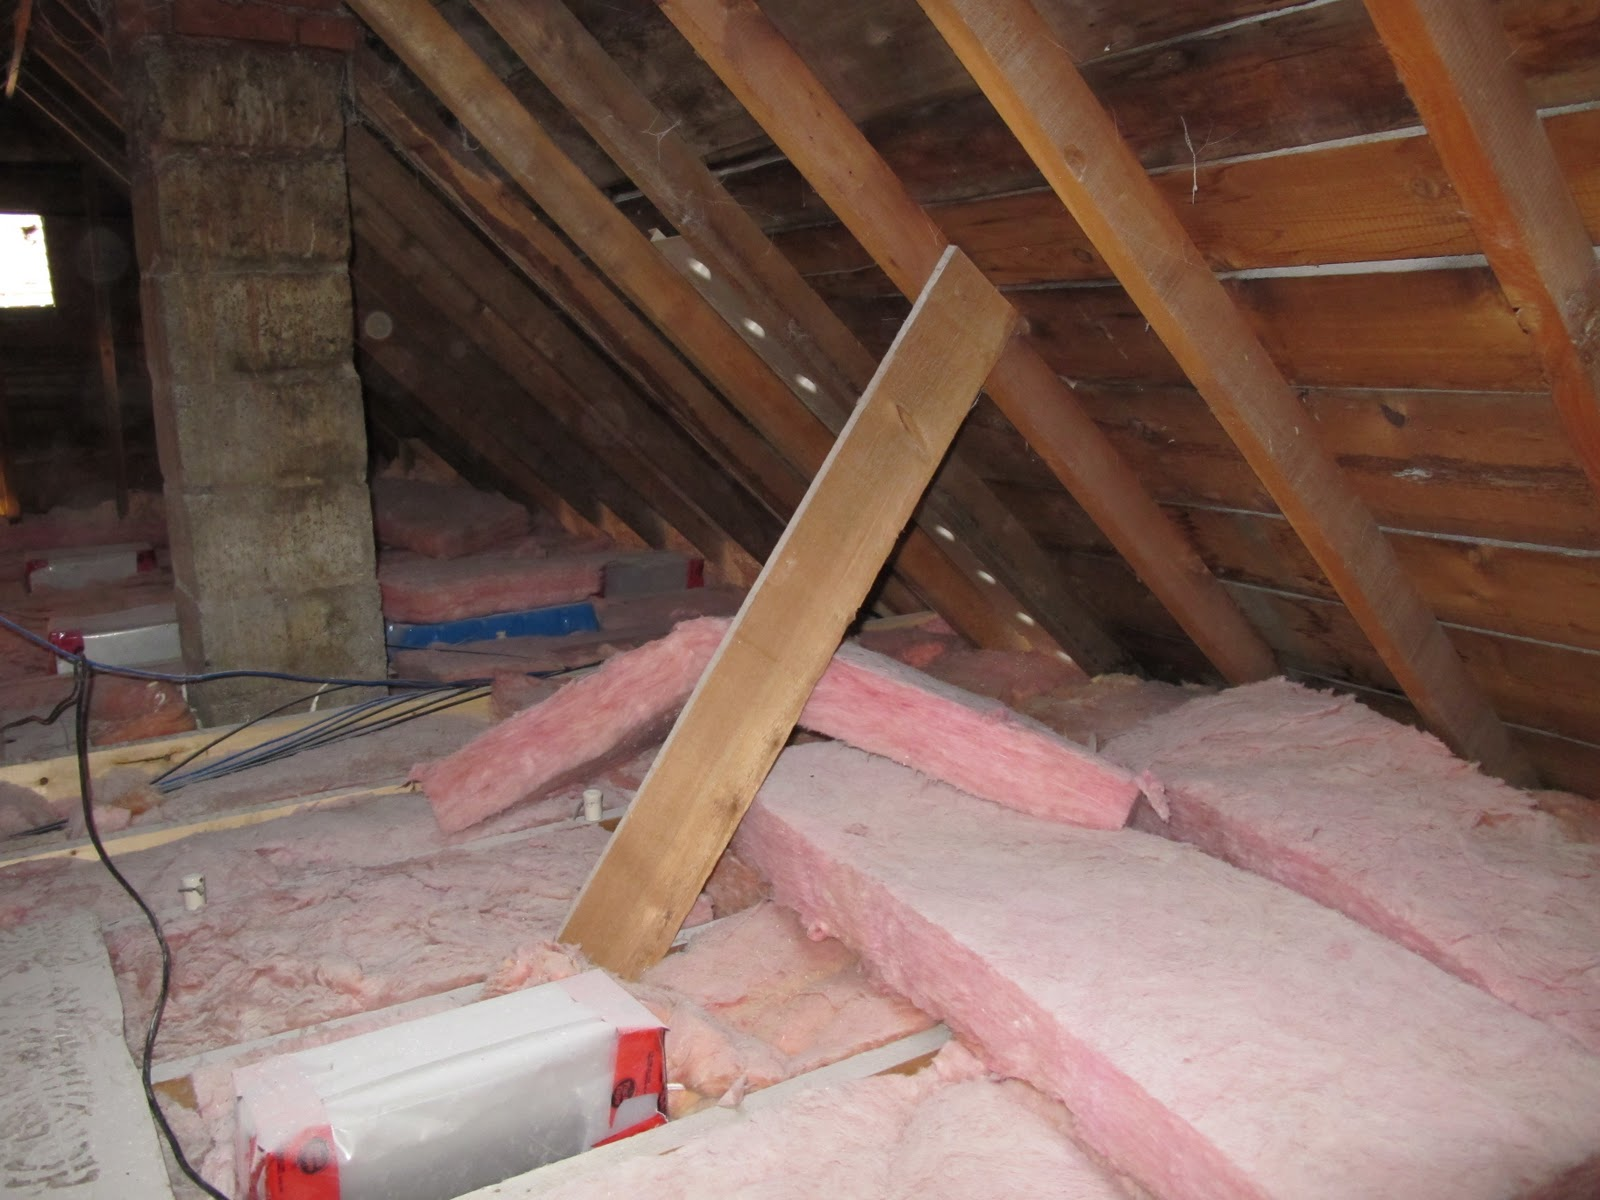 loft insulation Find a loft insulation on gumtree , the #1 site for classifieds ads in the uk.